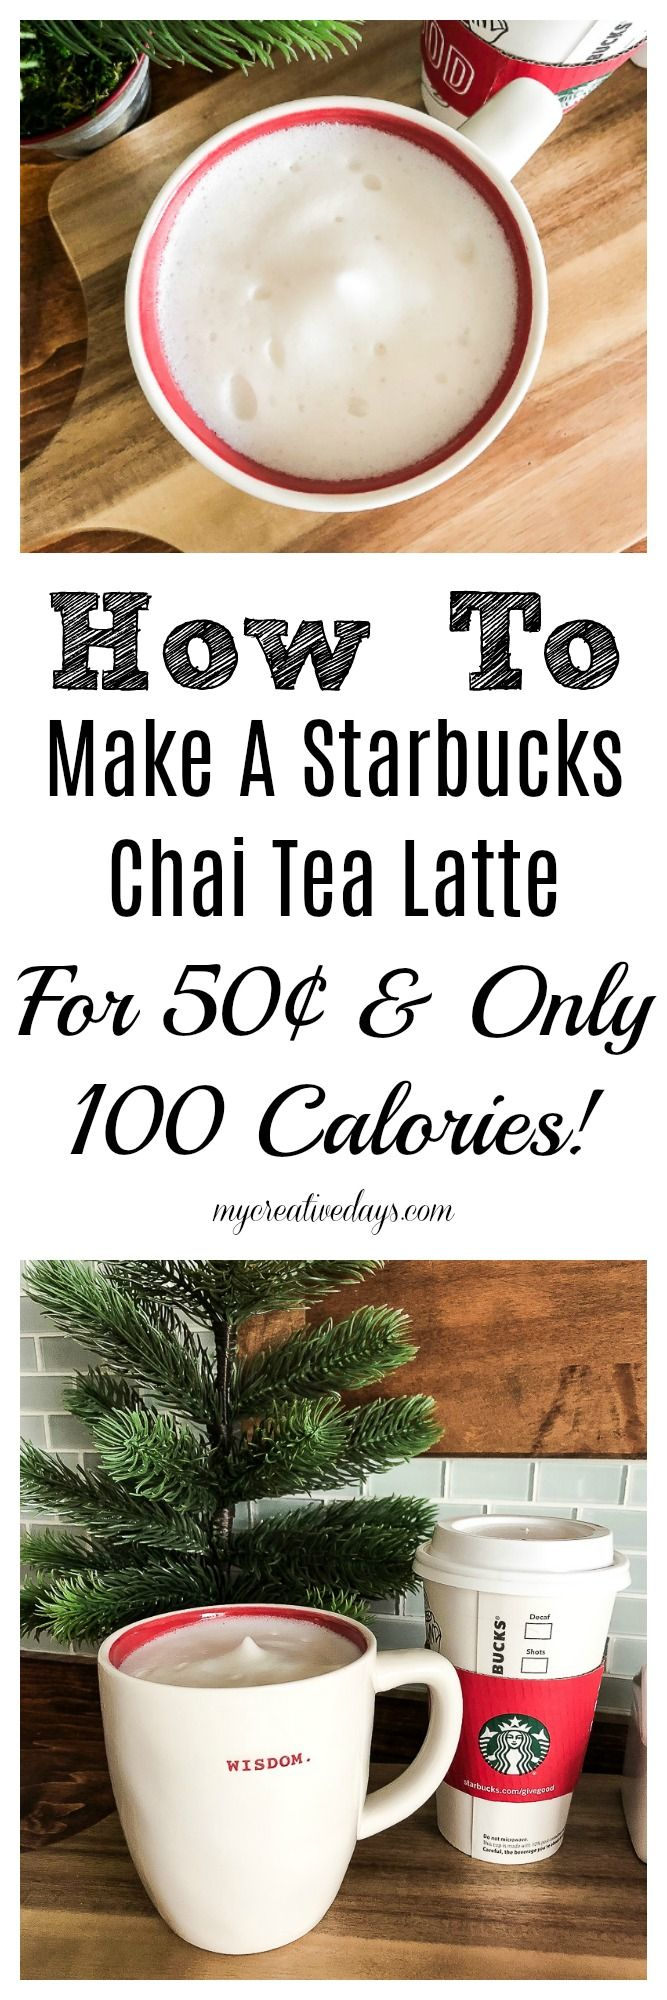 If you love Starbucks, but want to find a way to save money and calories when you enjoy your favorite drink, look no further. This homemade Starbucks Chai Tea Latte recipe costs 50¢ to make and only has 100 calories in it!